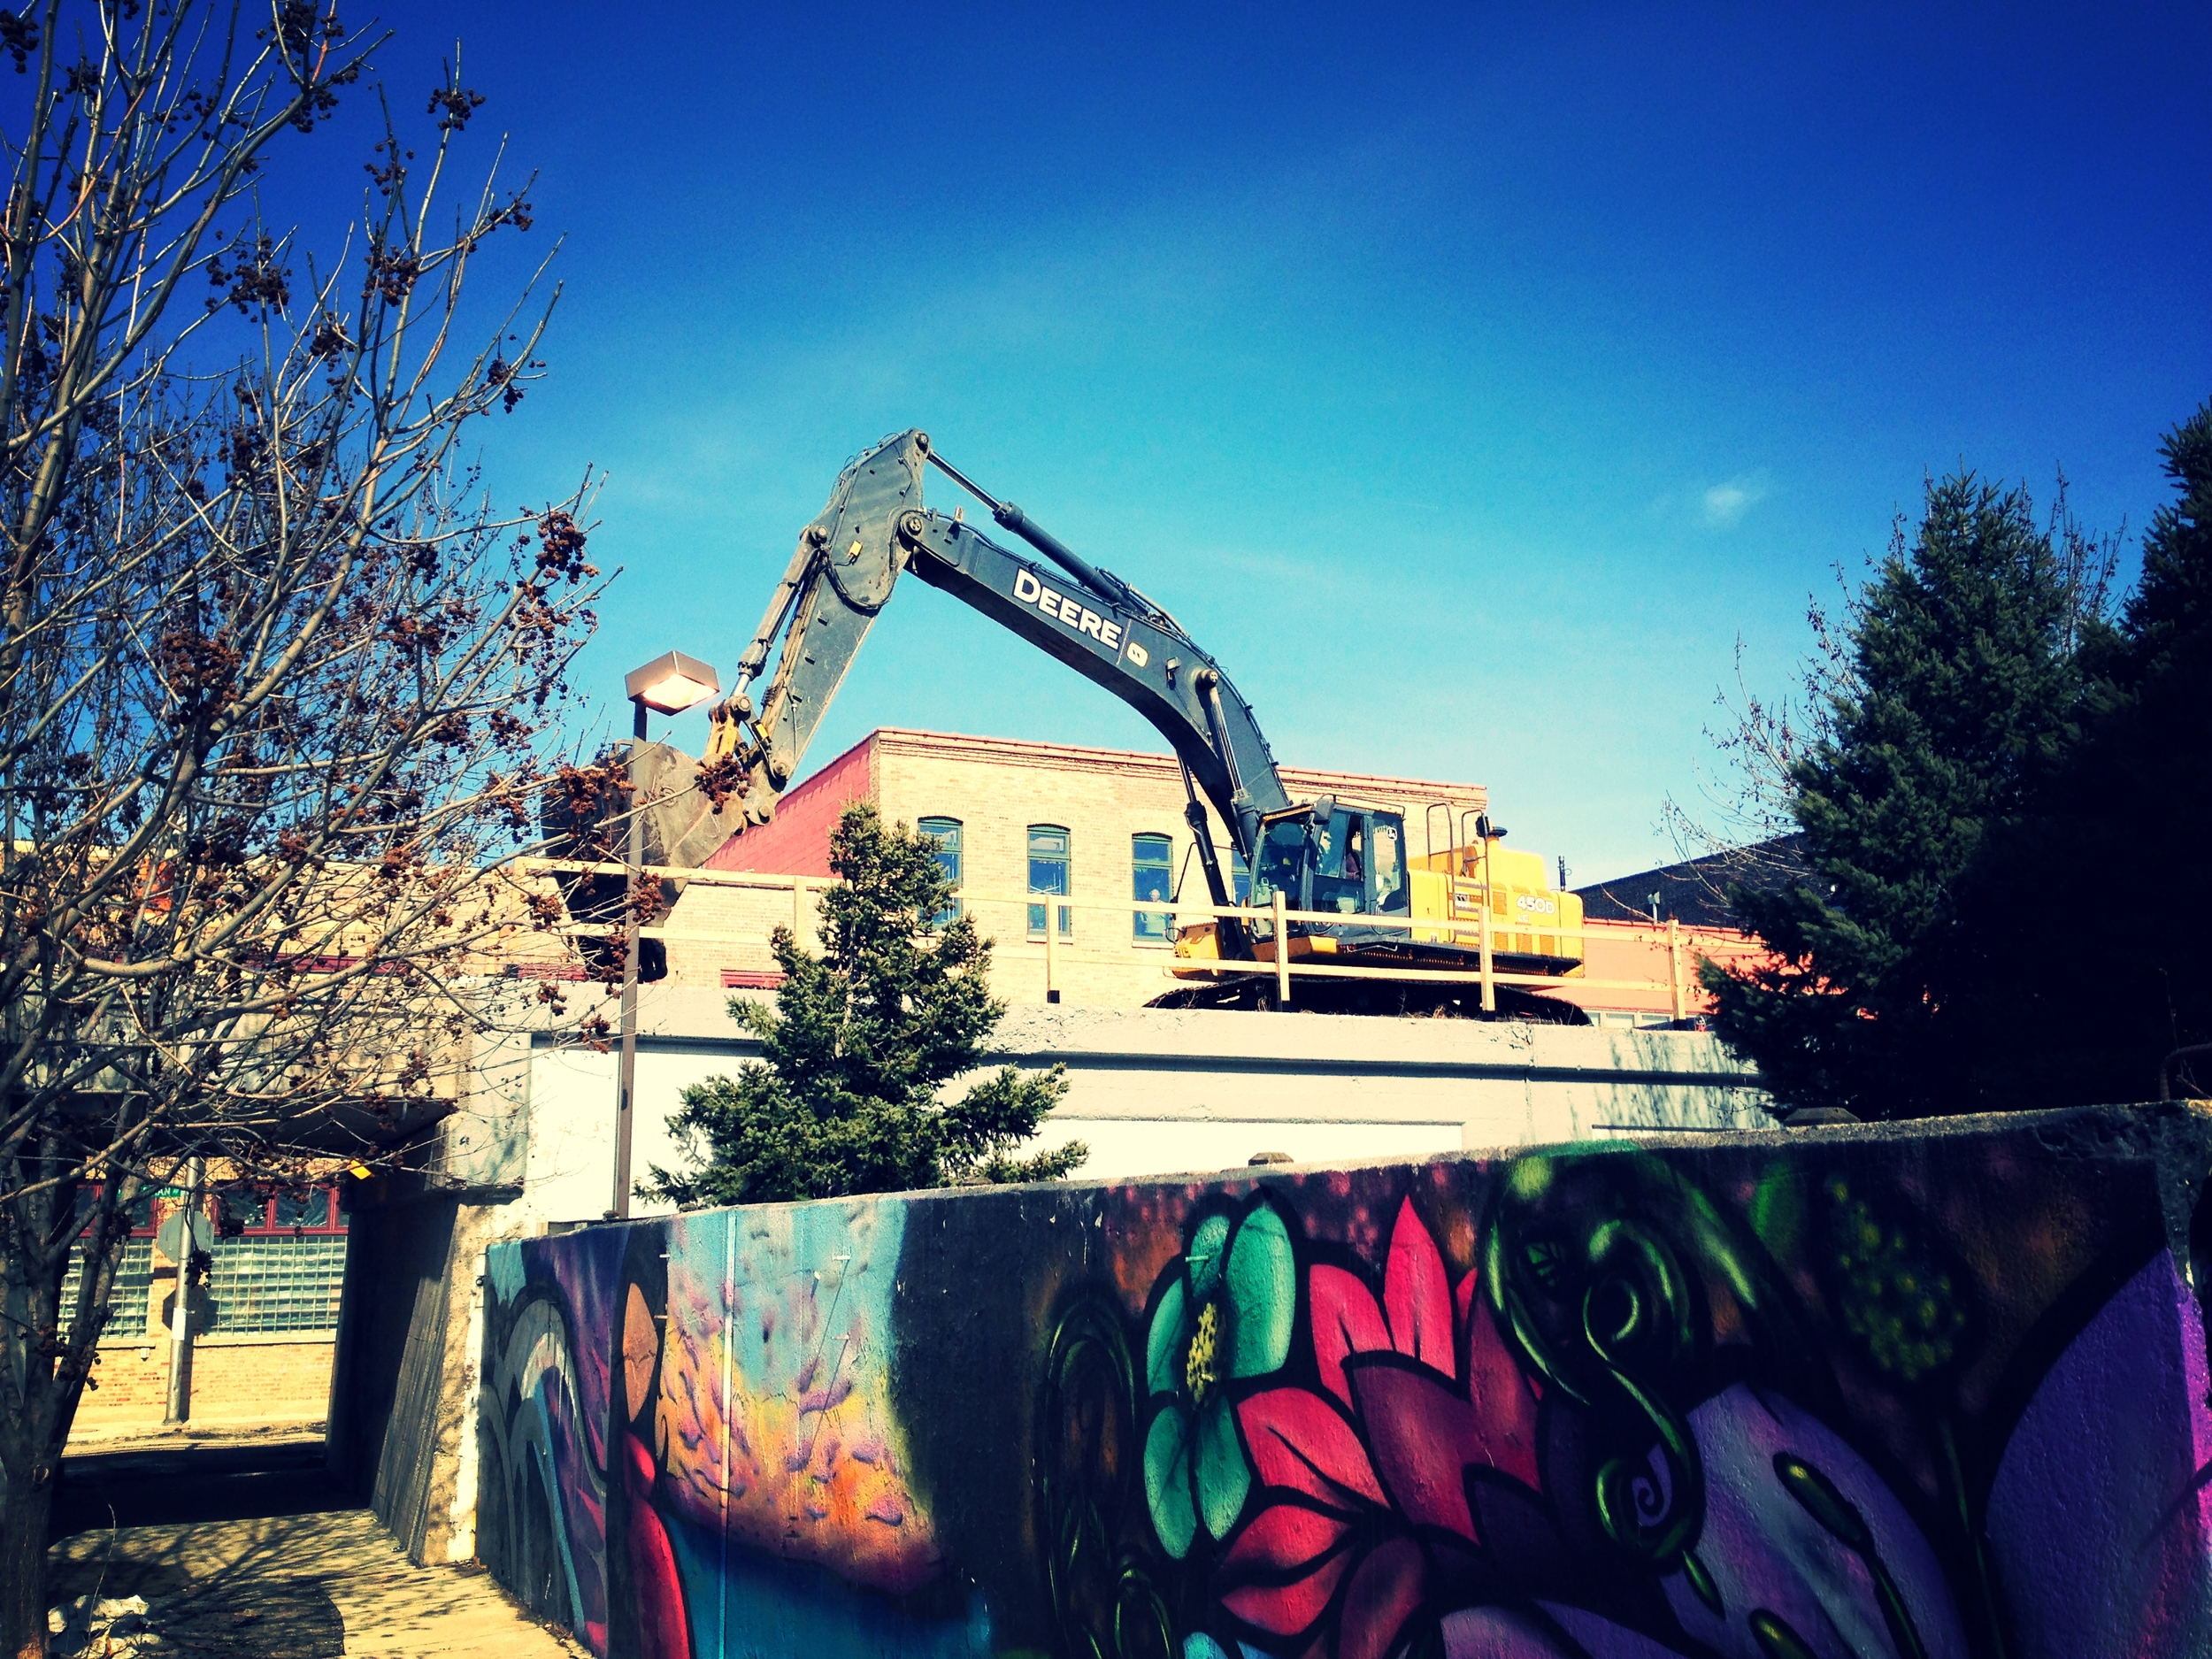 Construction crews at work in March in Humboldt Park.